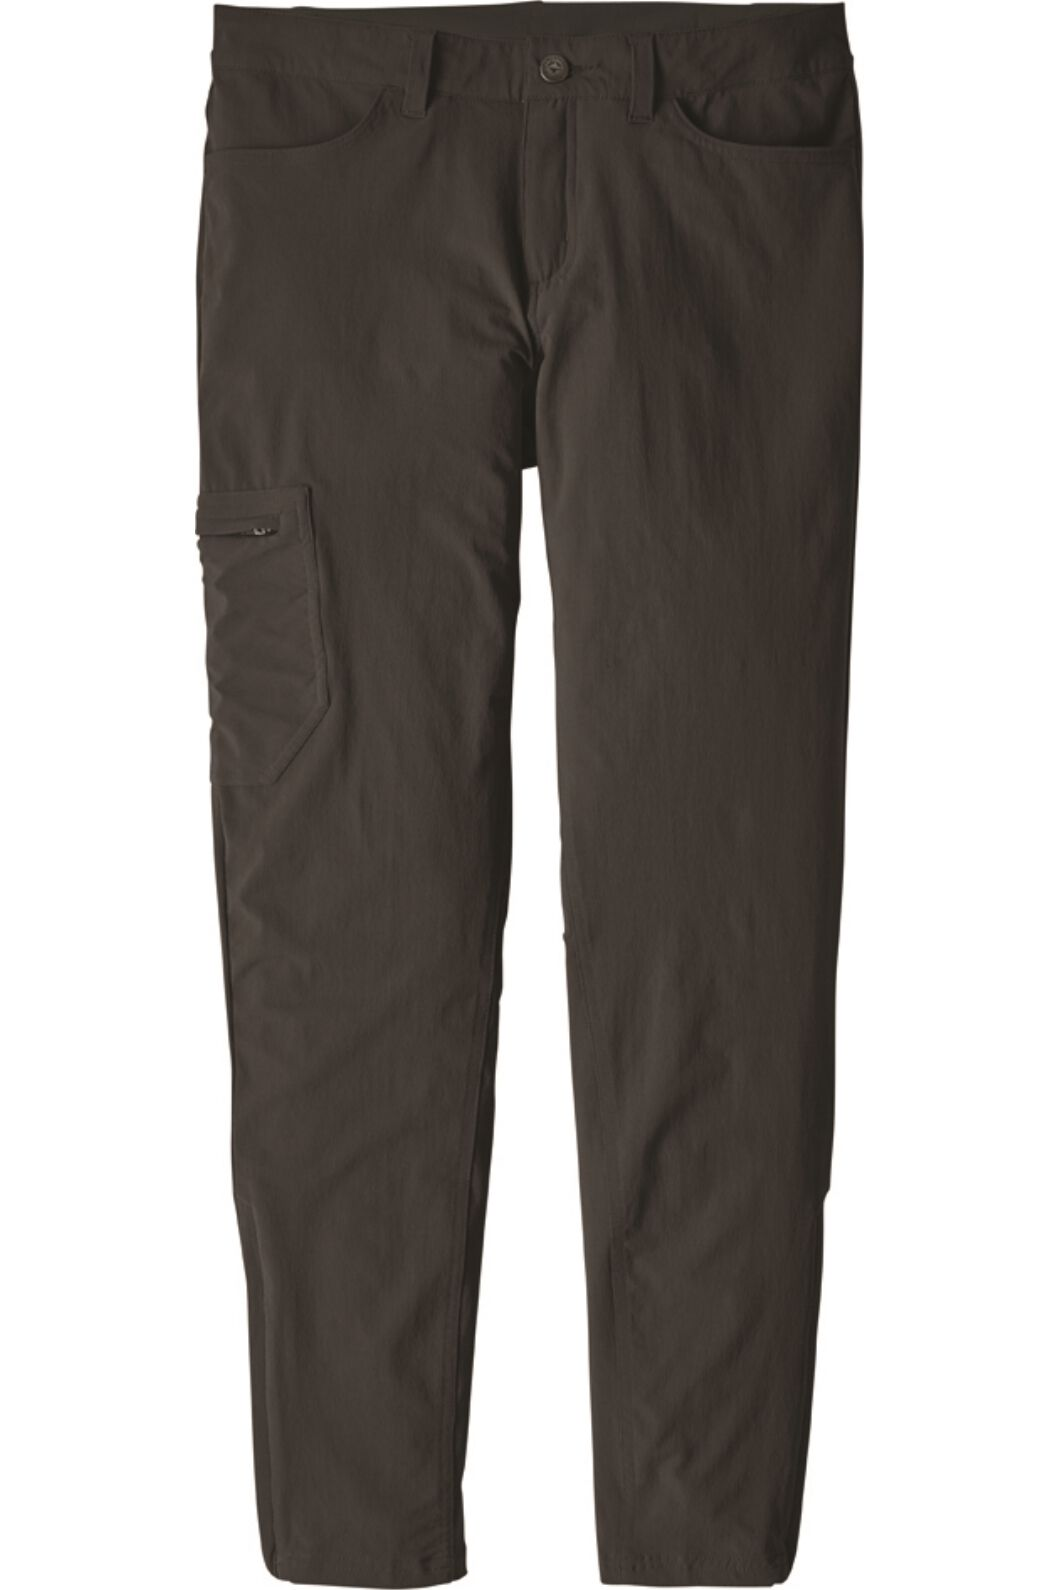 Patagonia Women's Skyline Traveler Pant, Black, hi-res